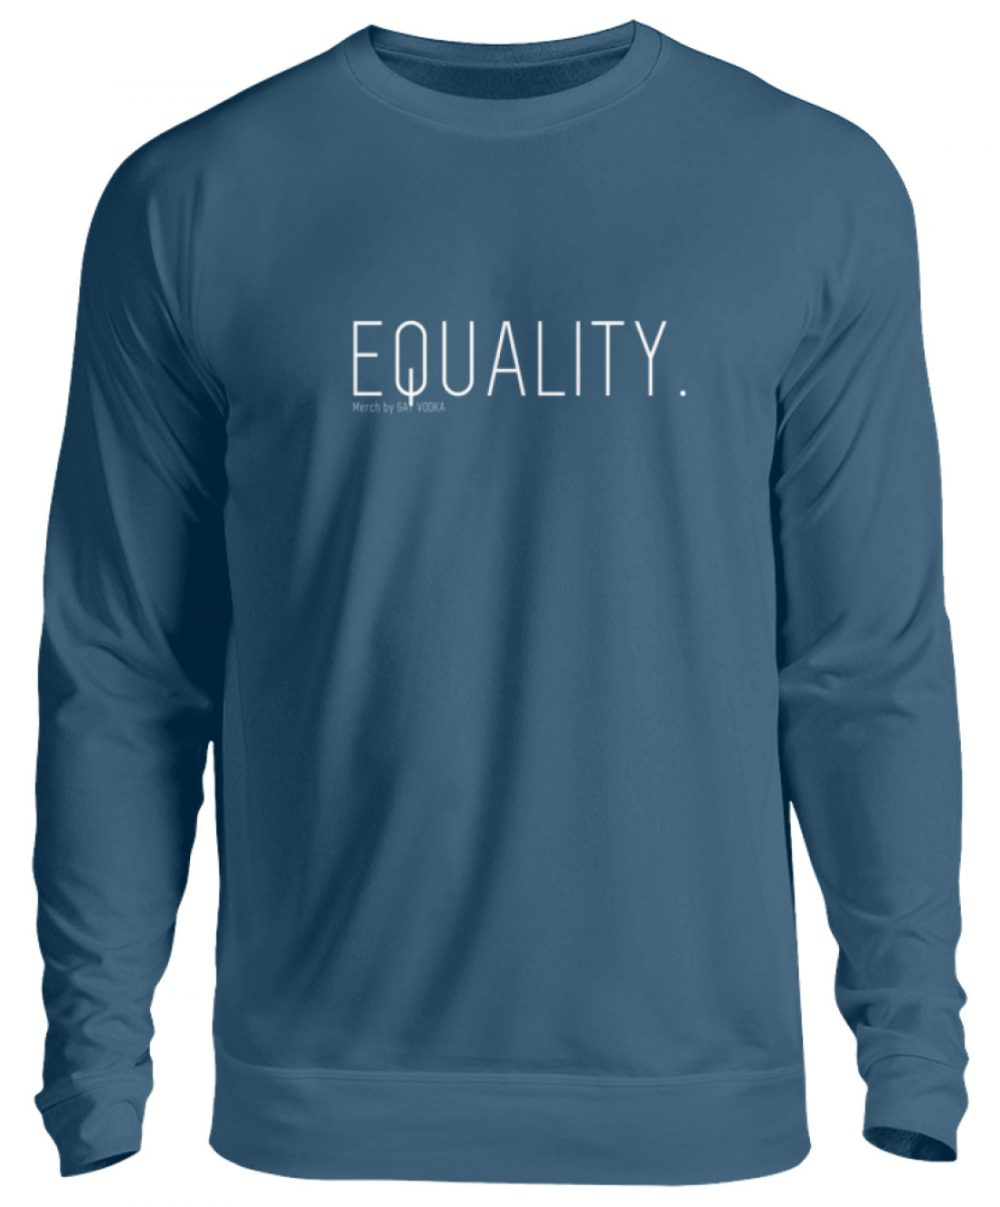 EQUALITY. - Unisex Pullover-1461